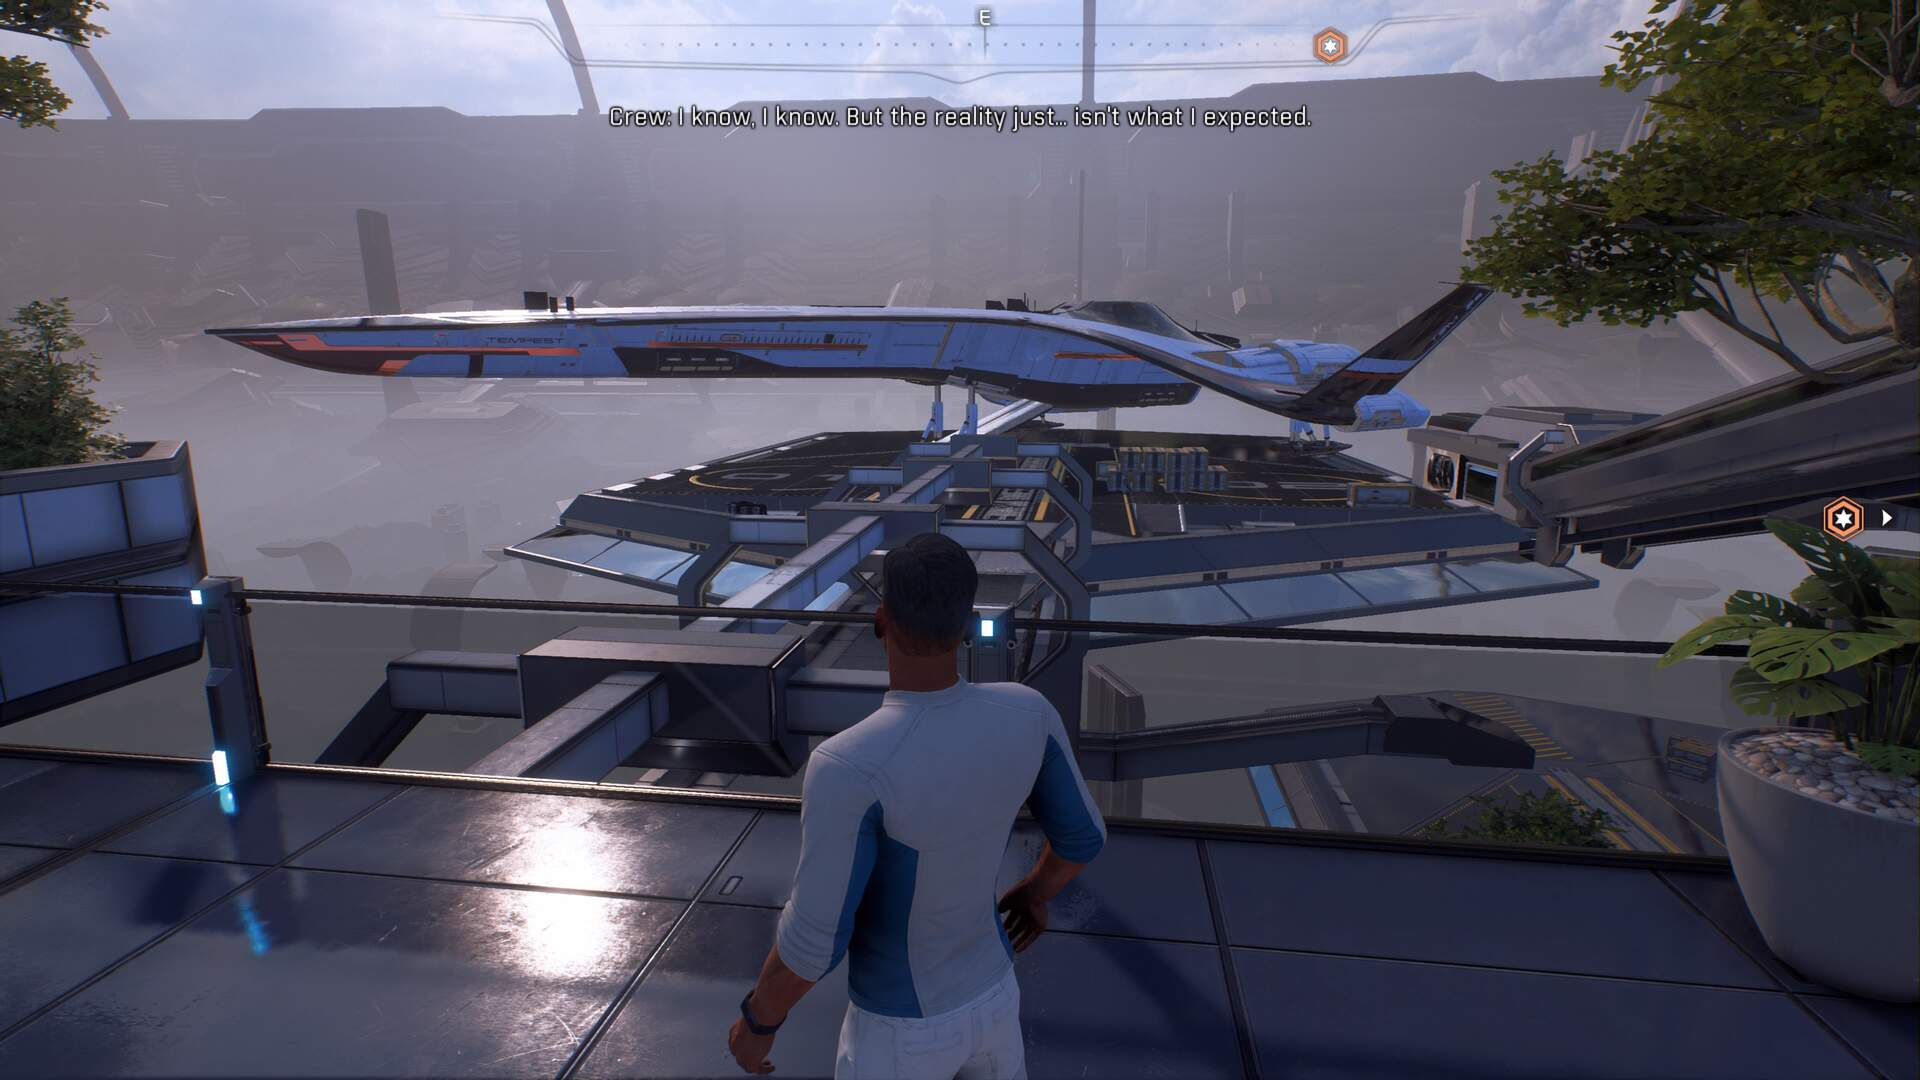 Mass Effect Andromeda Best Cryo Pods to Unlock - Science, Military, Commerce - Requirements and Benefits